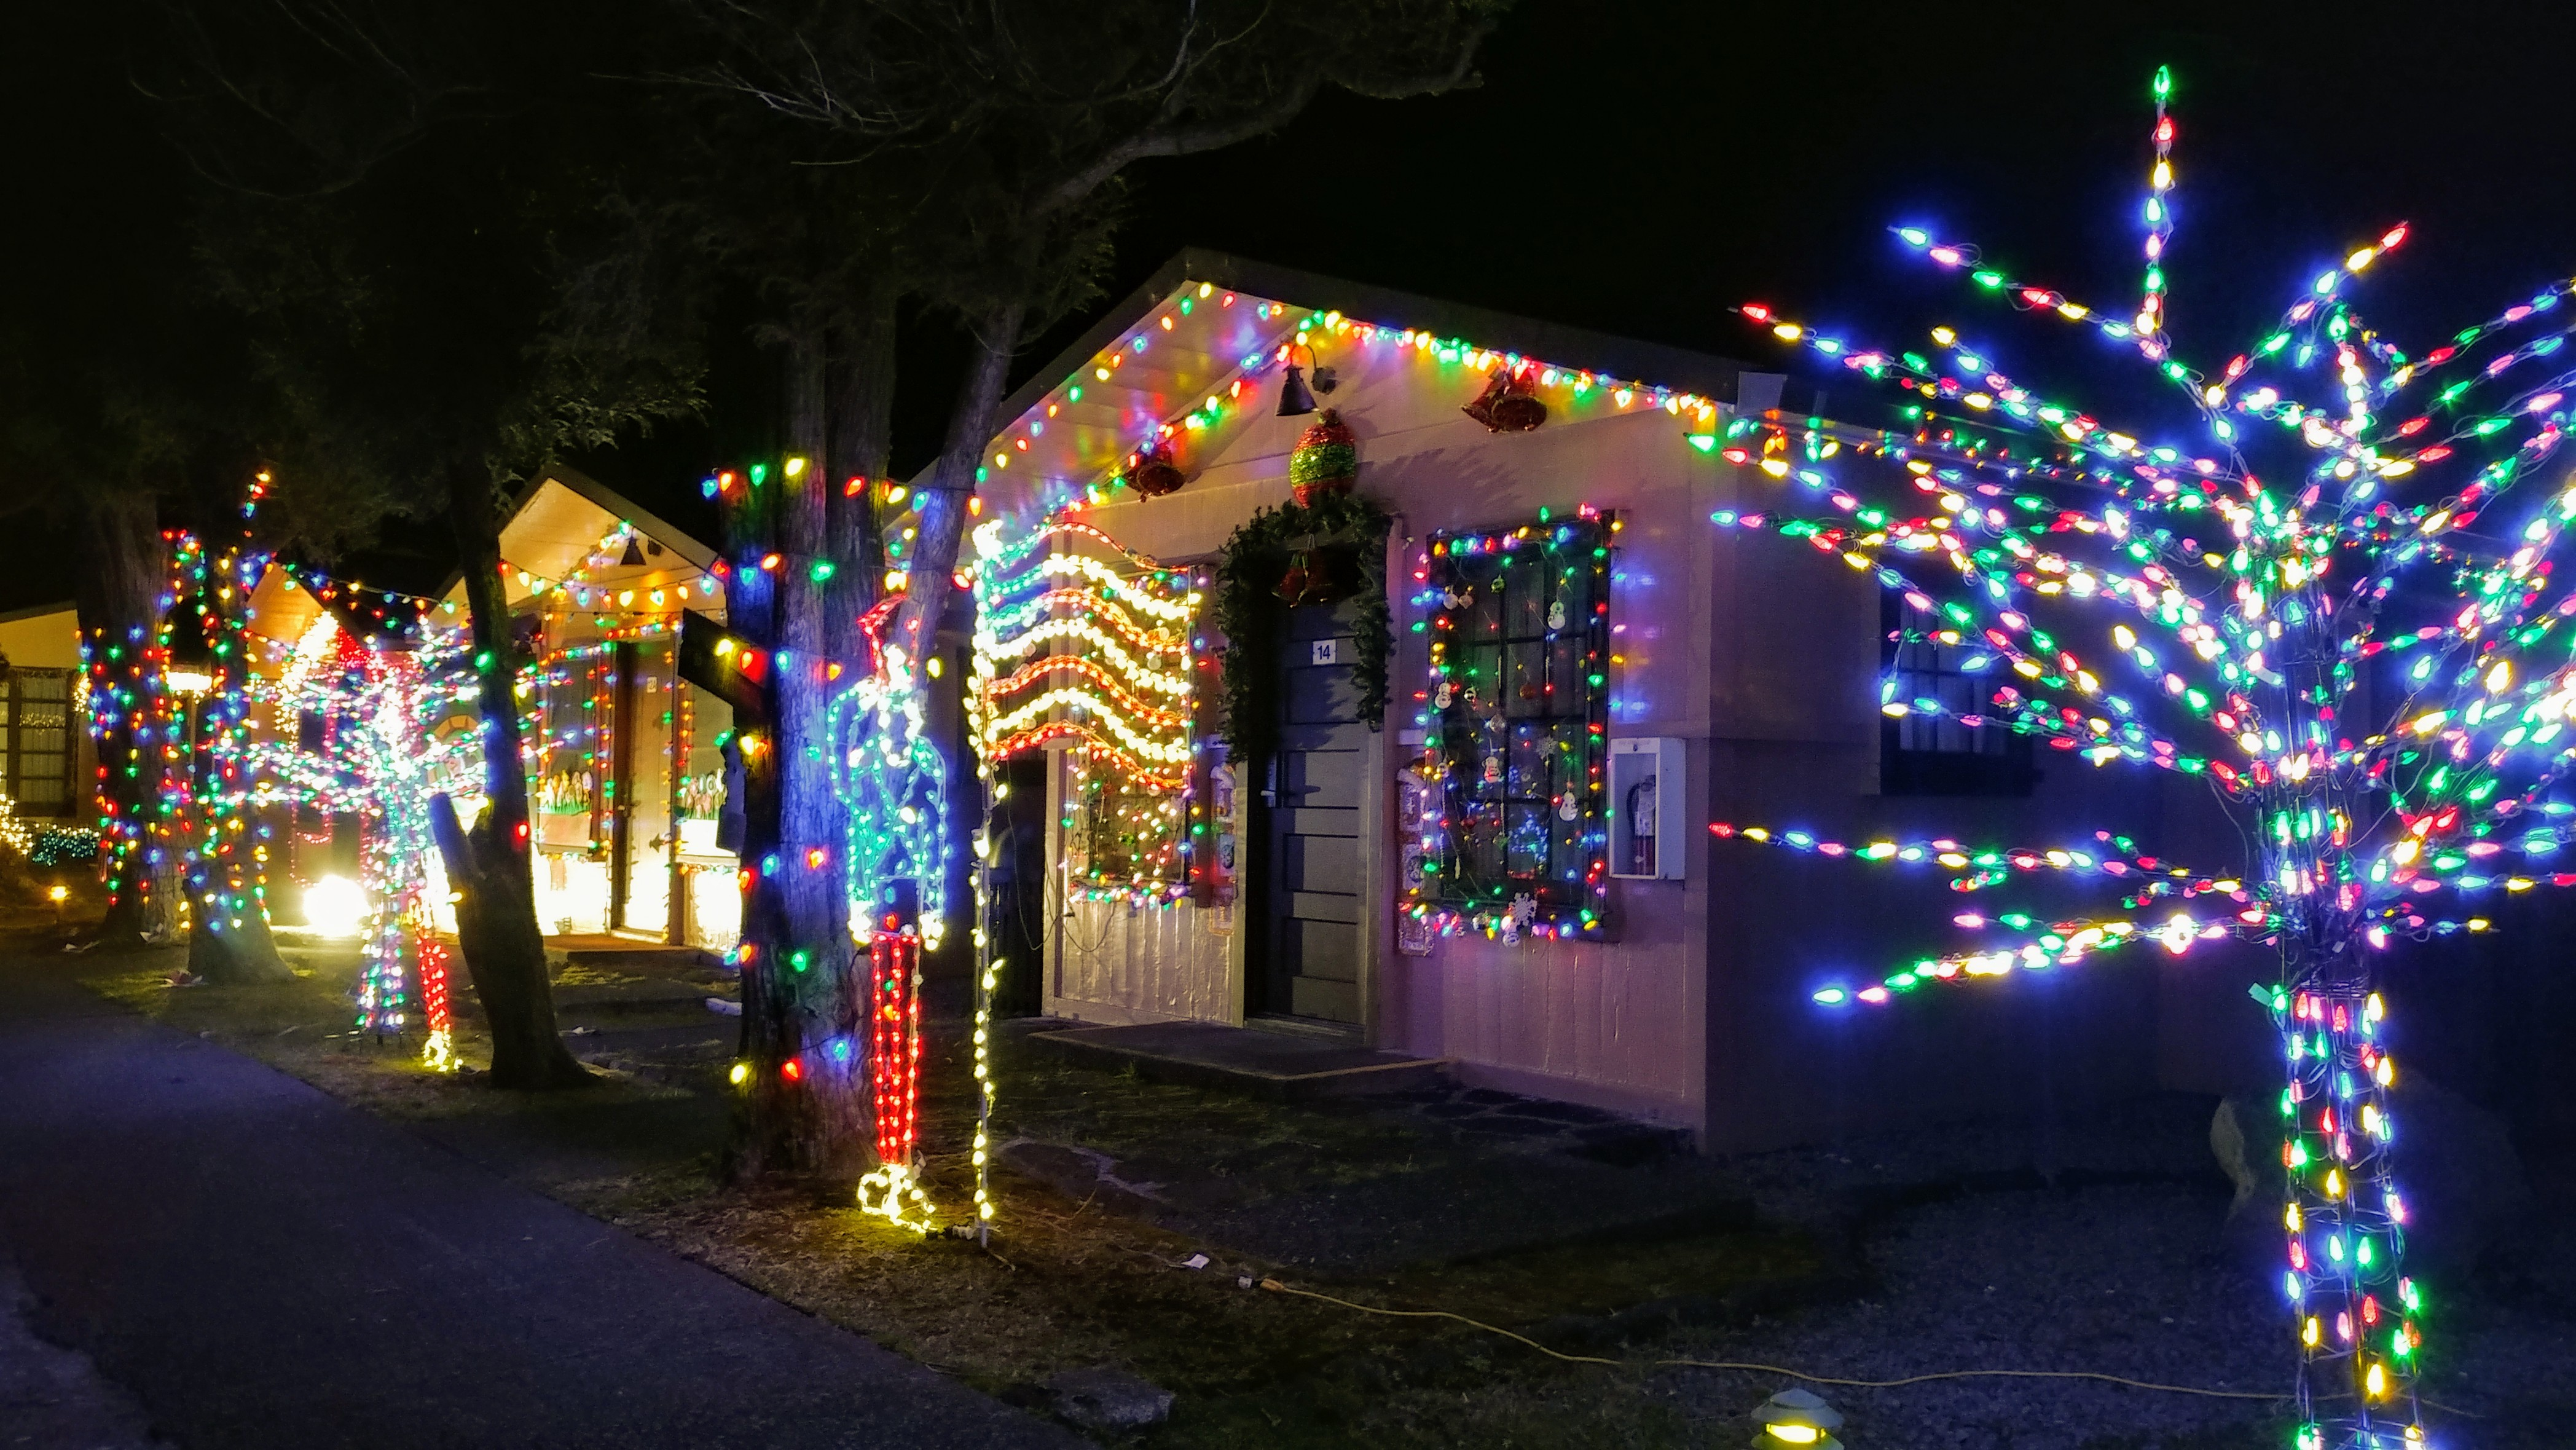 Video Photos Best Hawaii I Island Christmas Light Displays Led String Wiring Diagram In Addition Kilauea Military Camp Cabin Holiday Decorating Challenge Volcanoes National Park Dec17 2017 Pc Crystal Richard